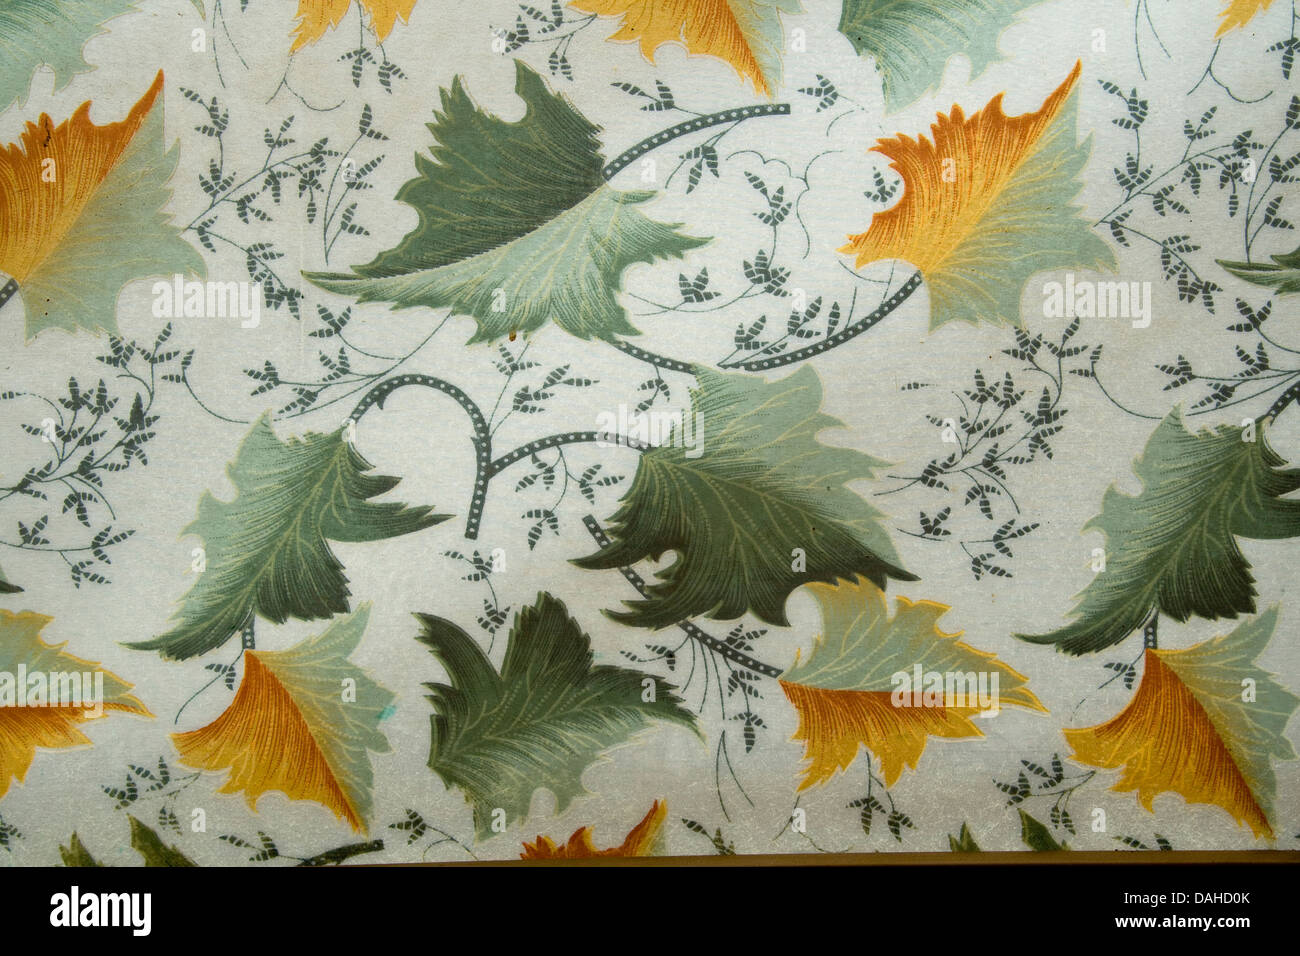 Leafy design on semi transparent Perspex sheet viewed against light - Stock Image